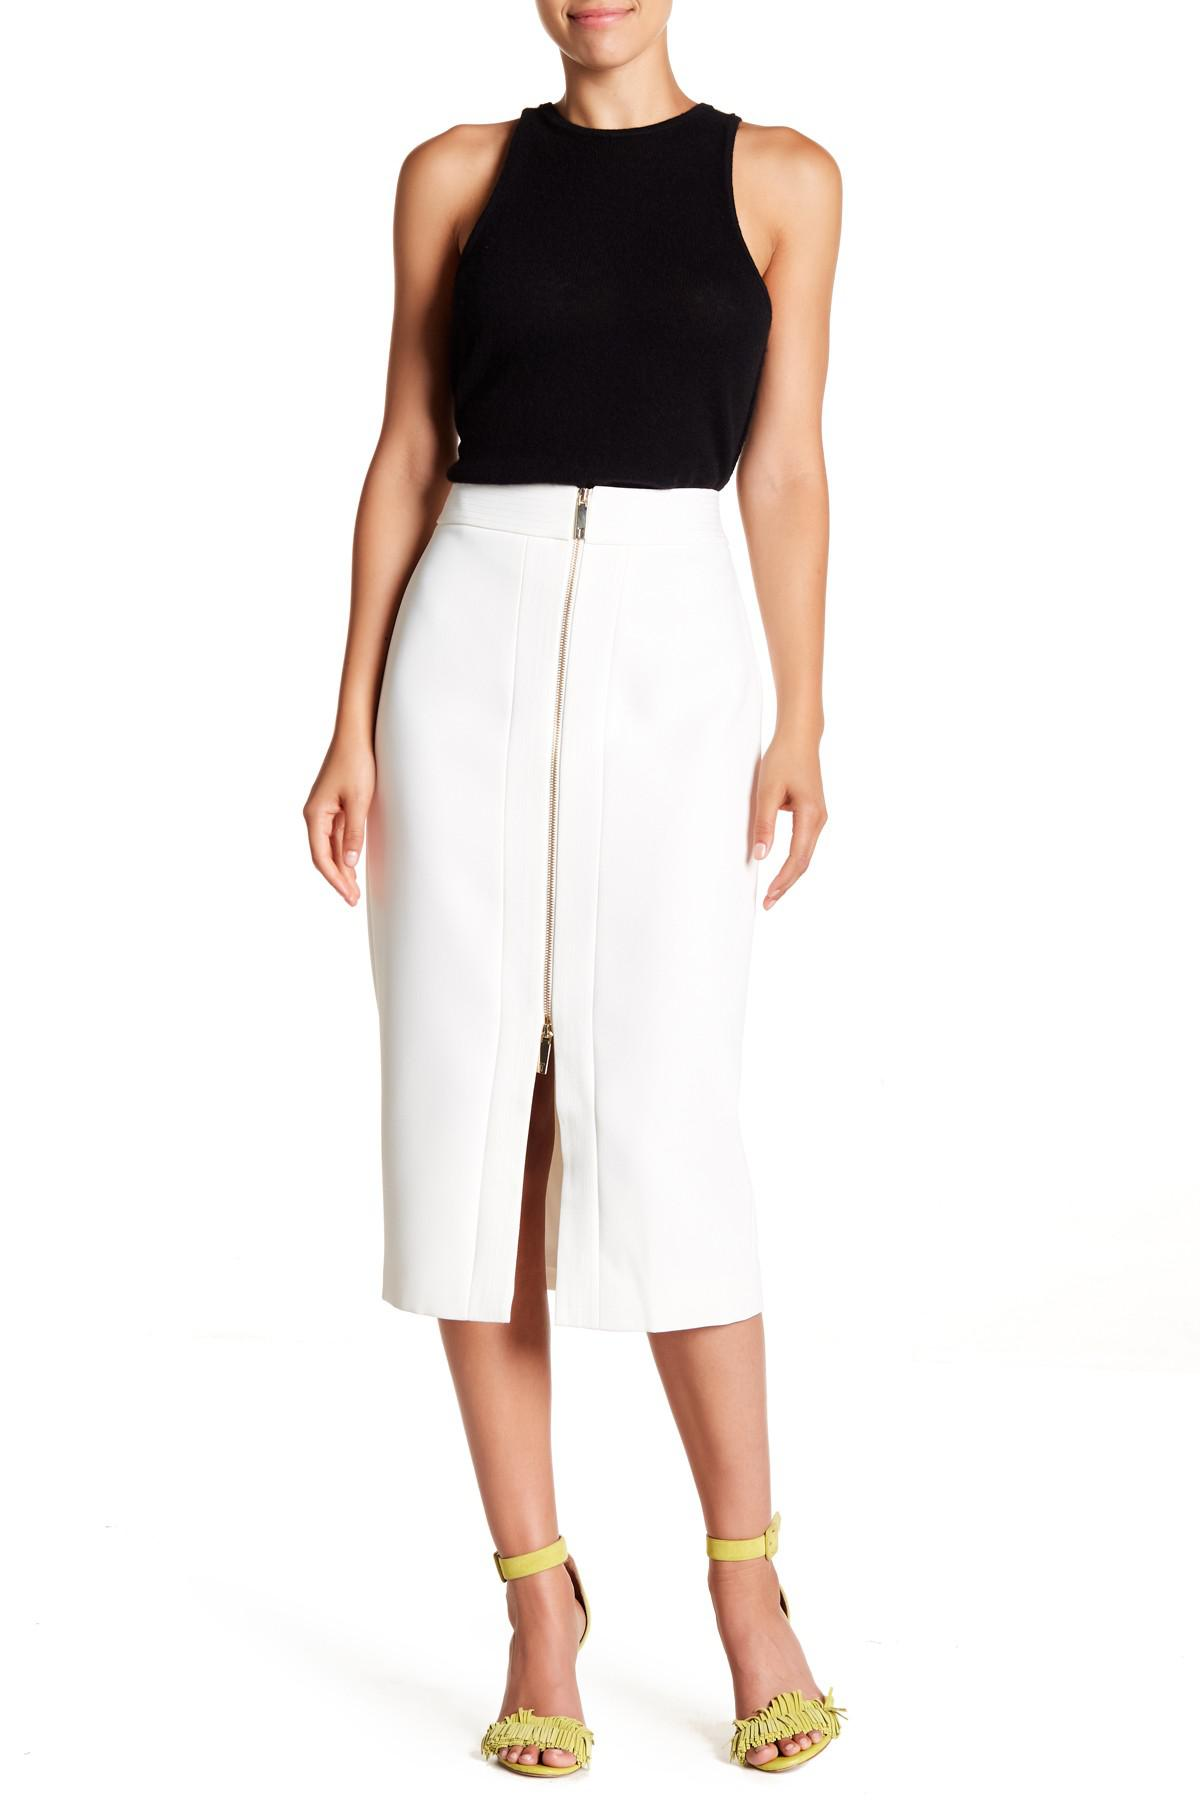 f7eca7a67 Lyst - Ted Baker Crepe Zip Pencil Skirt in Natural